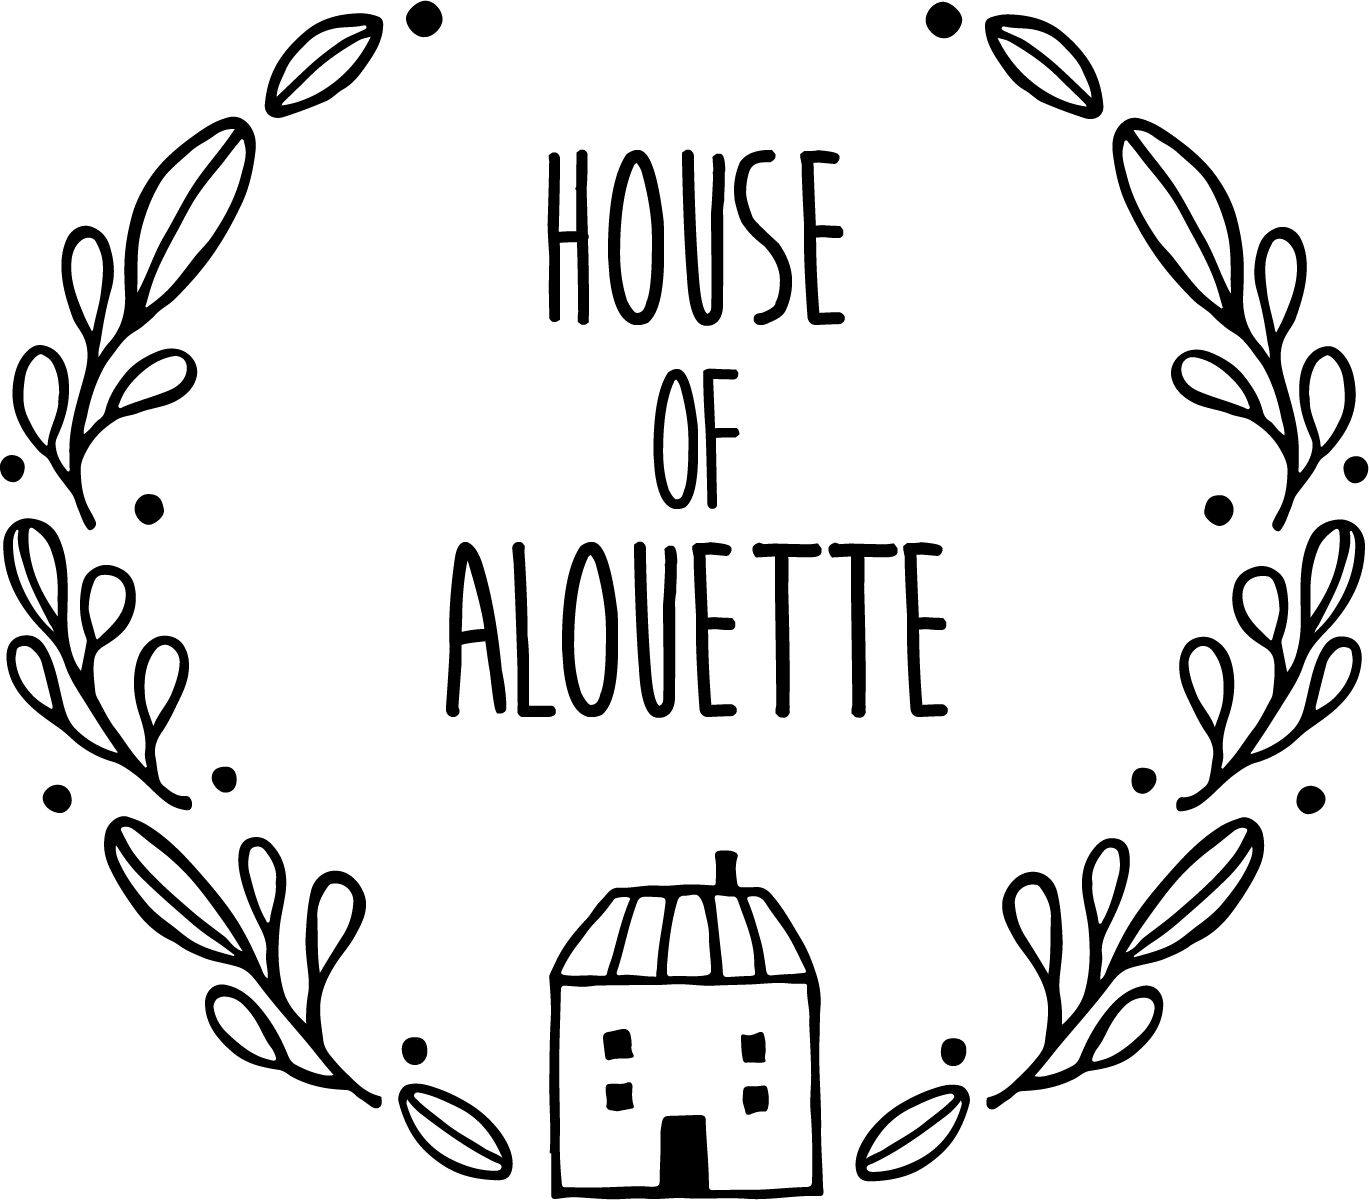 House of Alouette